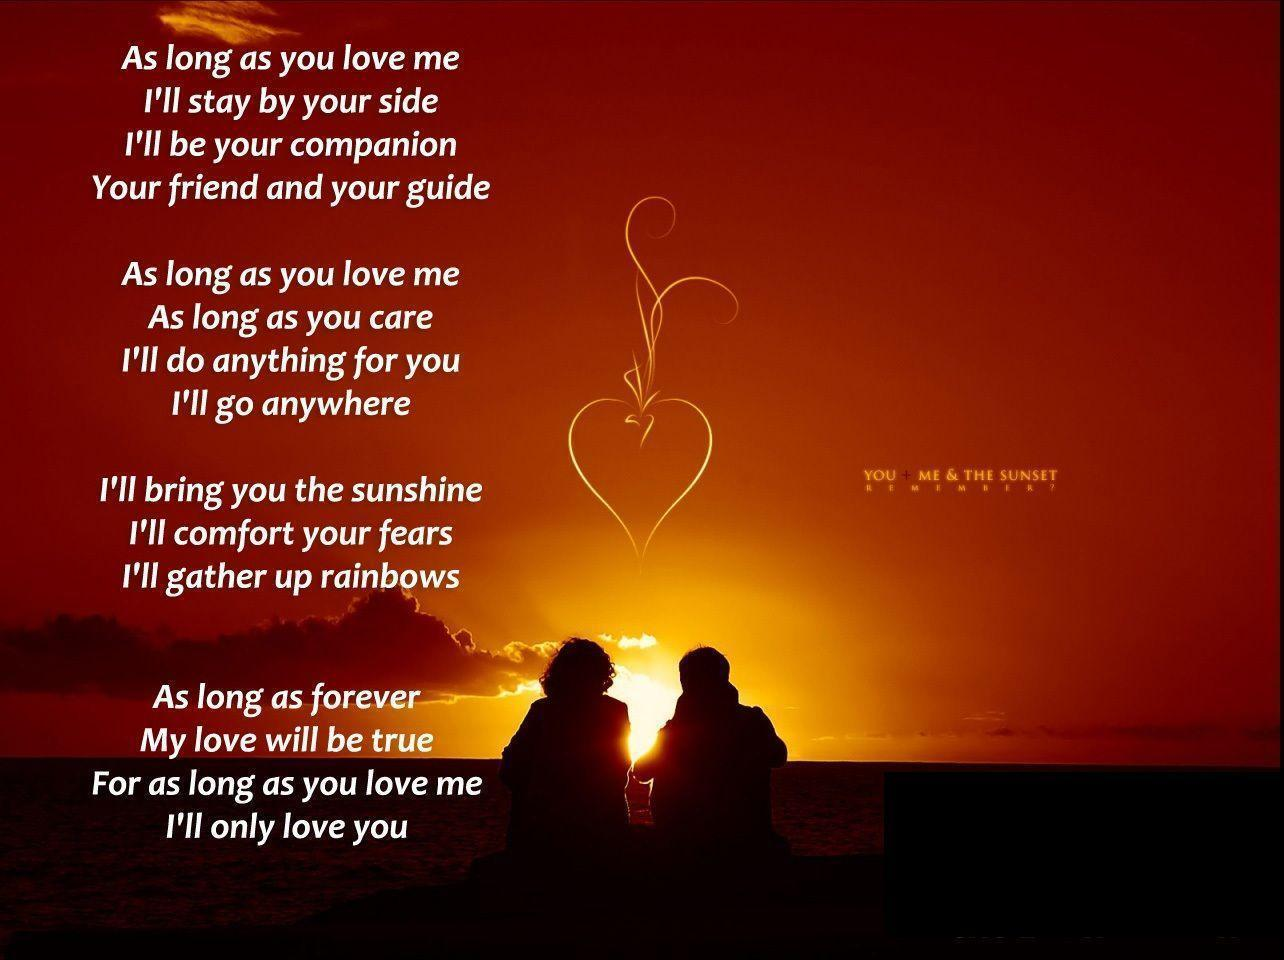 Love Poems Wallpapers - Wallpaper cave